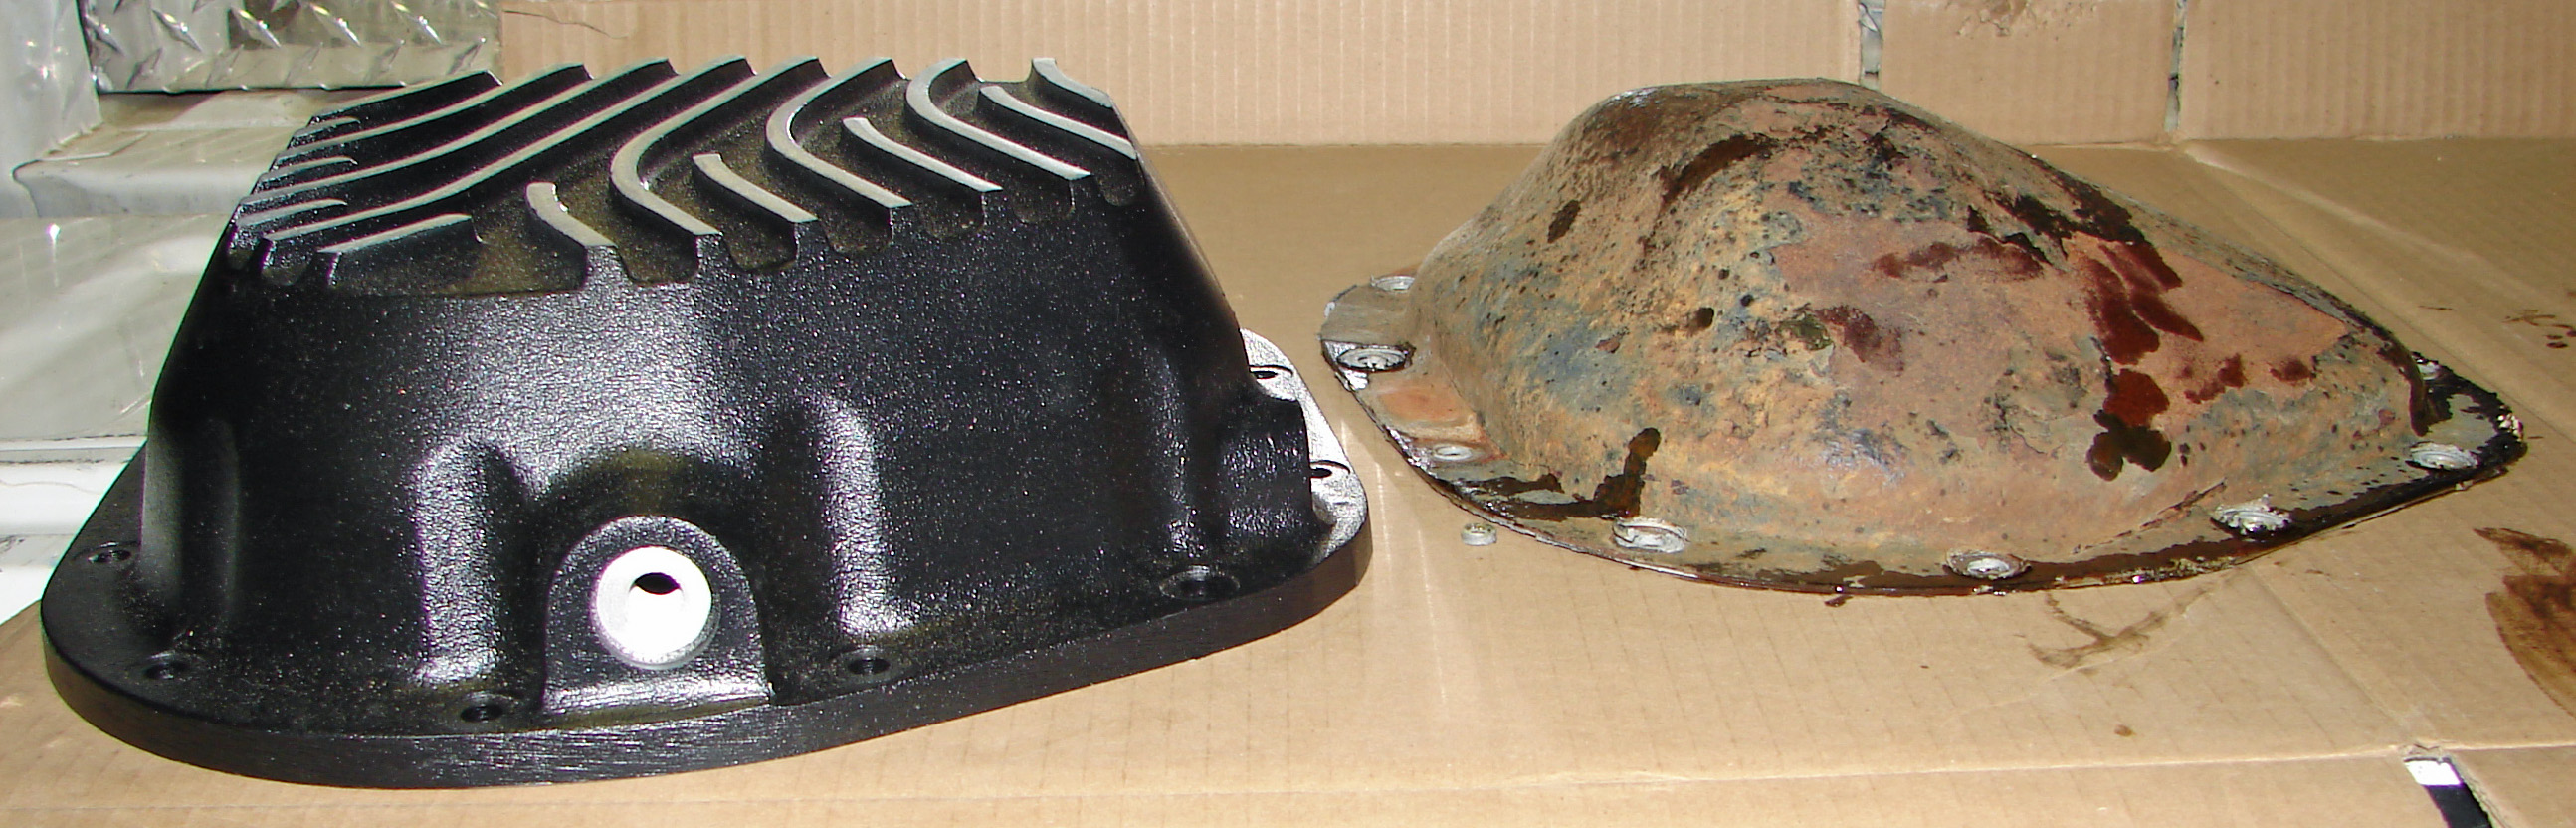 PML transmission pan and differential covers can add years of life to your truck when pulling a ...